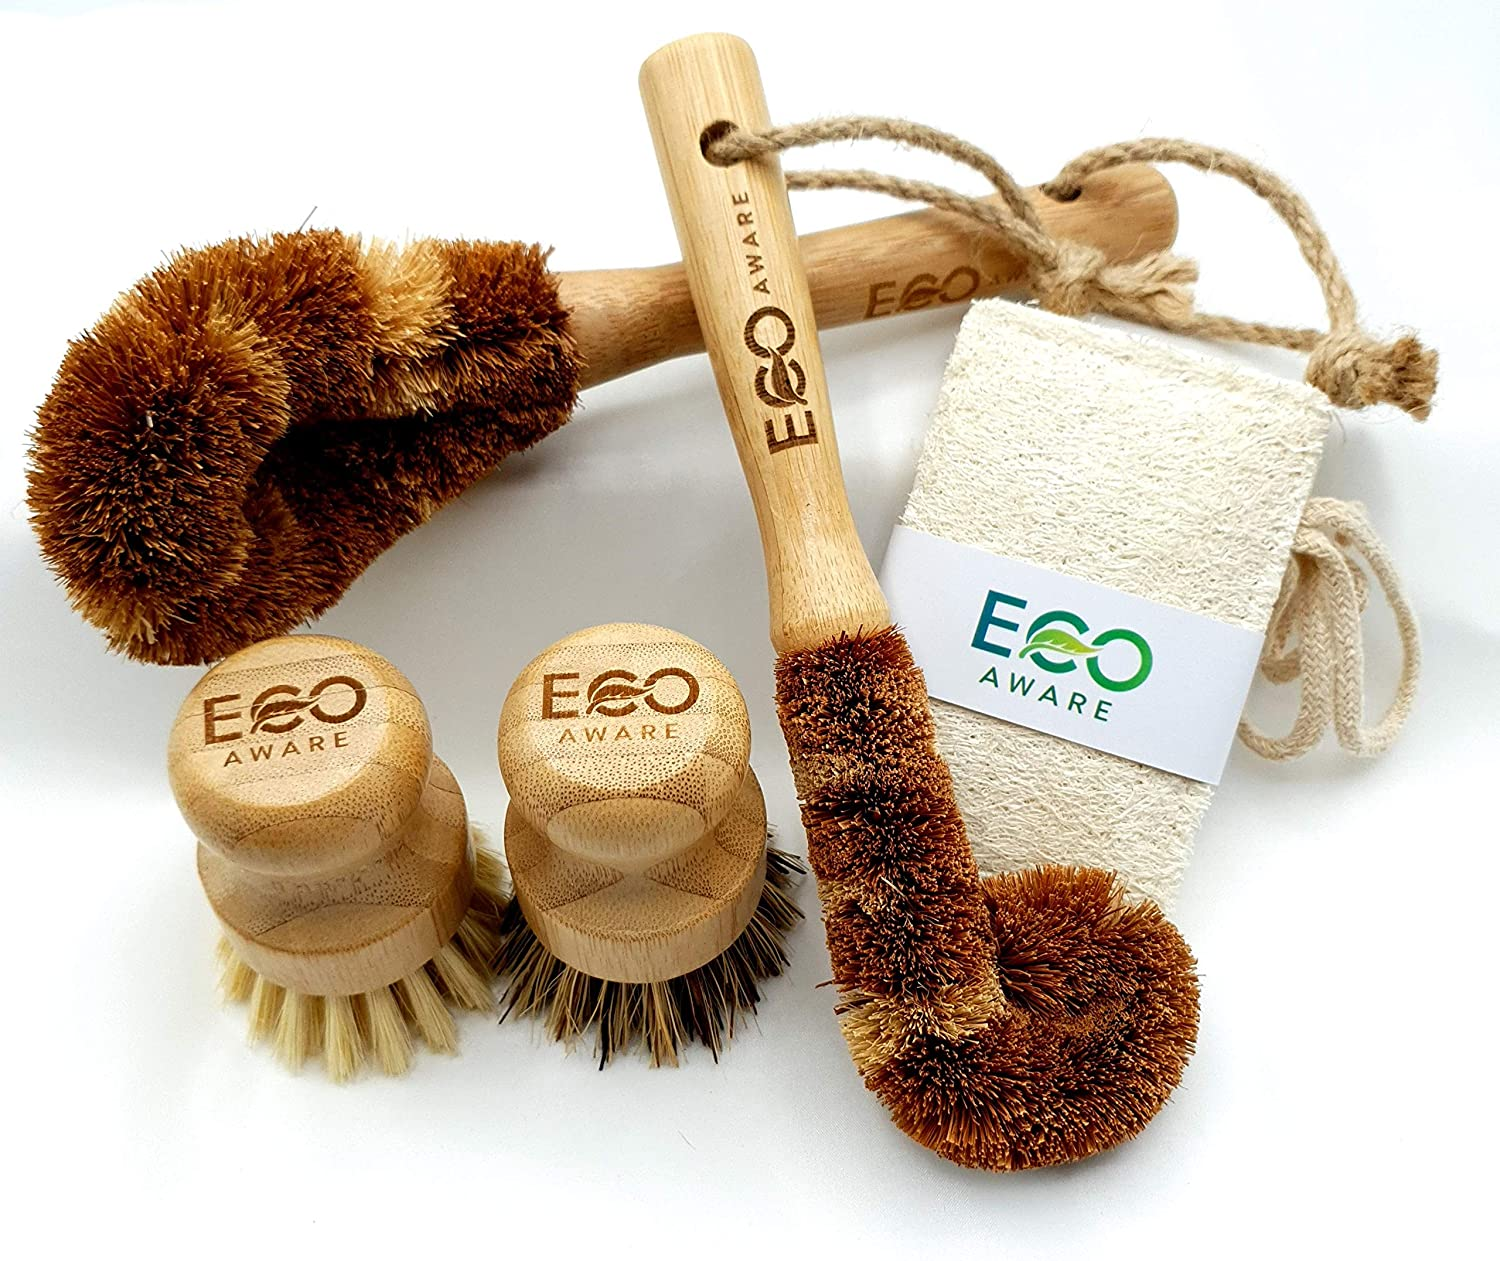 Eco-Aware Natural Bamboo Dish Scrub 4 Piece Brush Set Crafted from Coconut Fibers with Bamboo Handles